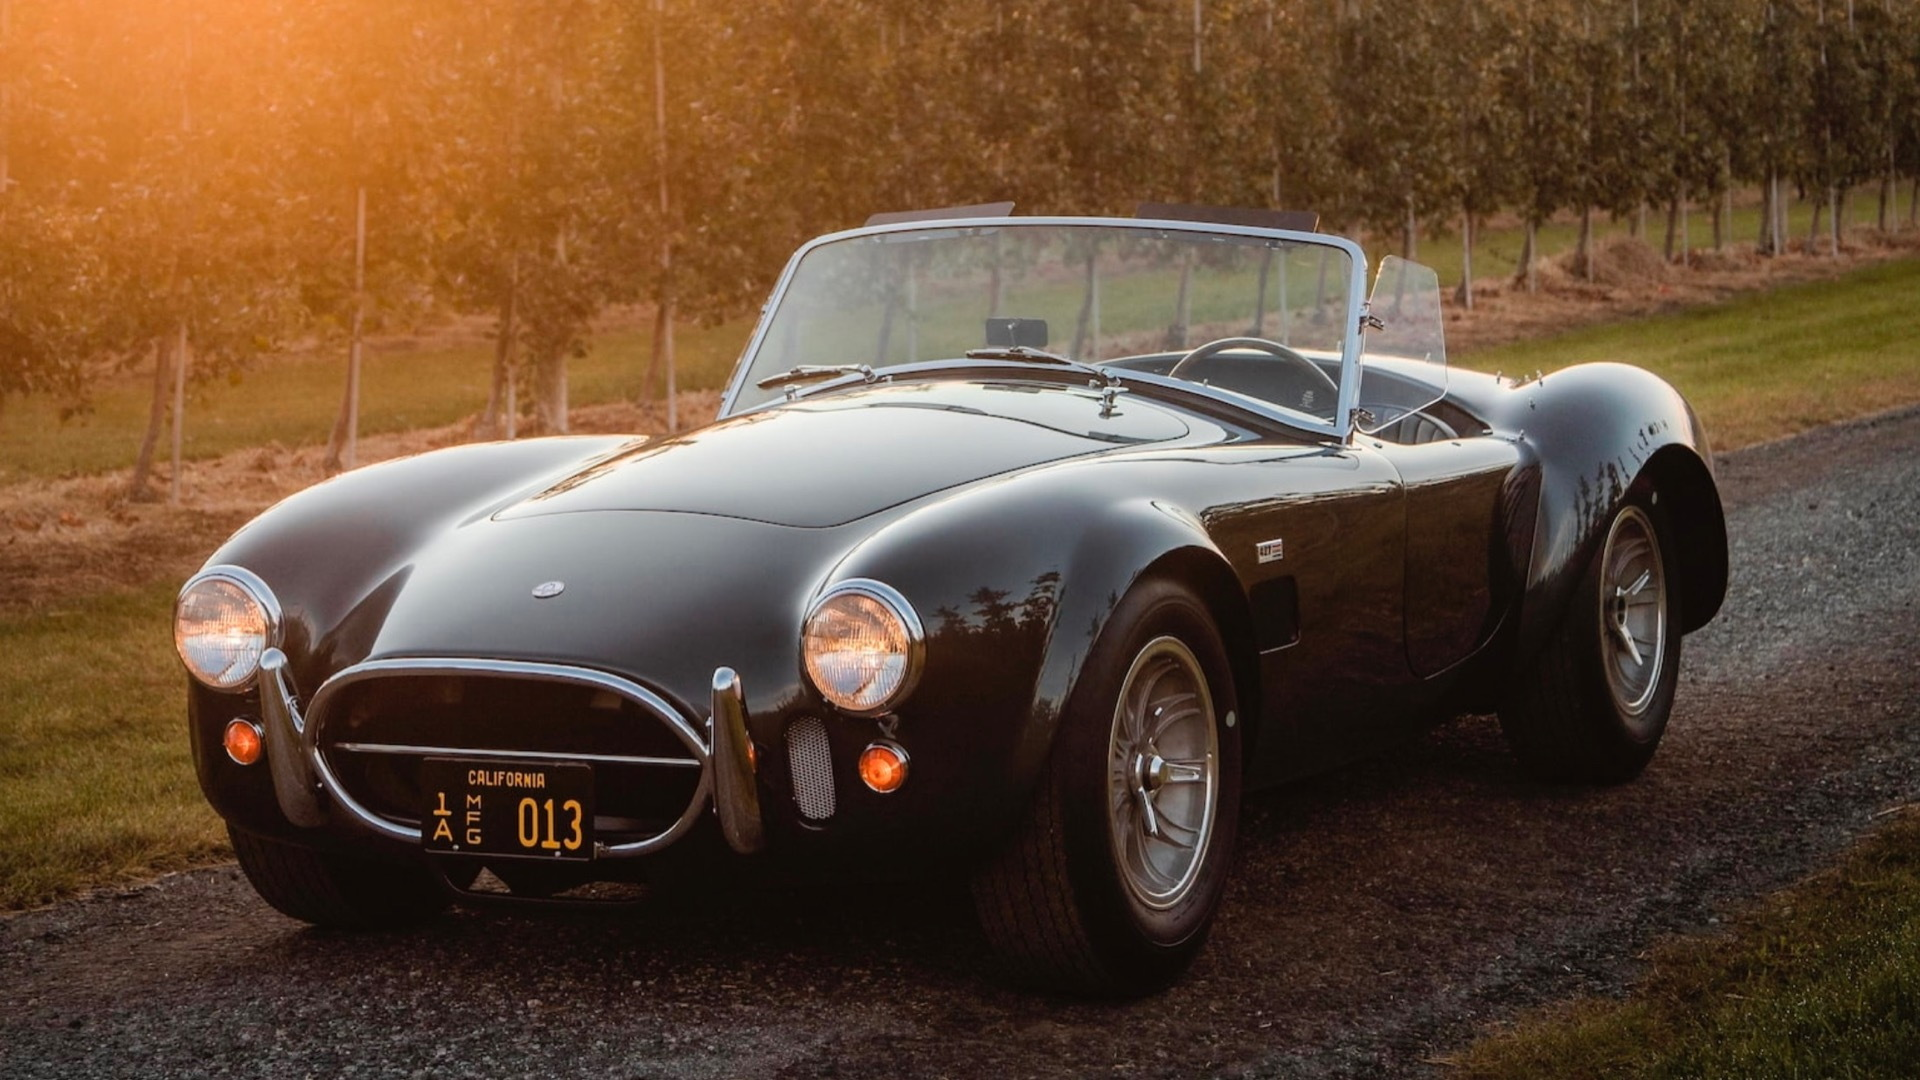 1965 Shelby 427 Cobra owned by Carroll Shelby - Photo Credit: Mecum Auctions